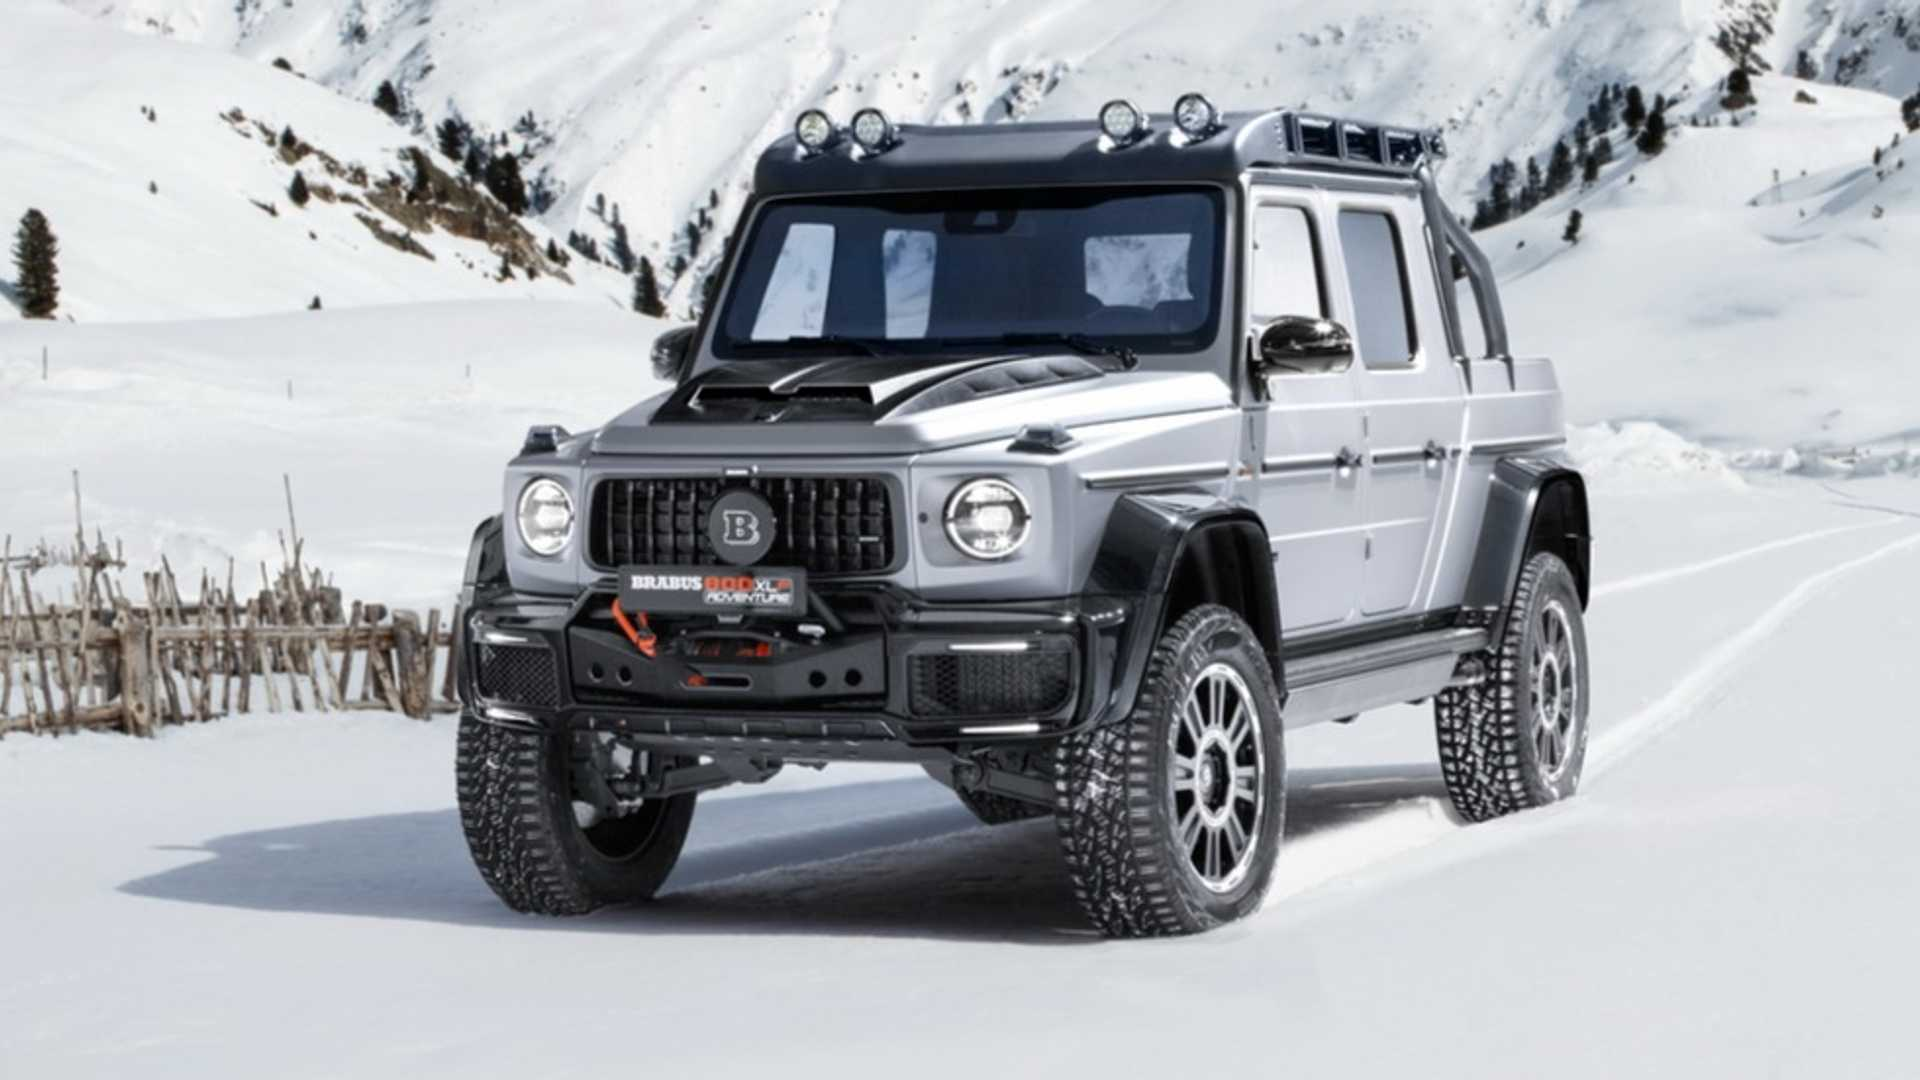 Brabus 800 Adventure Xlp Is Rugged G Class Based Truck Of Your Dreams